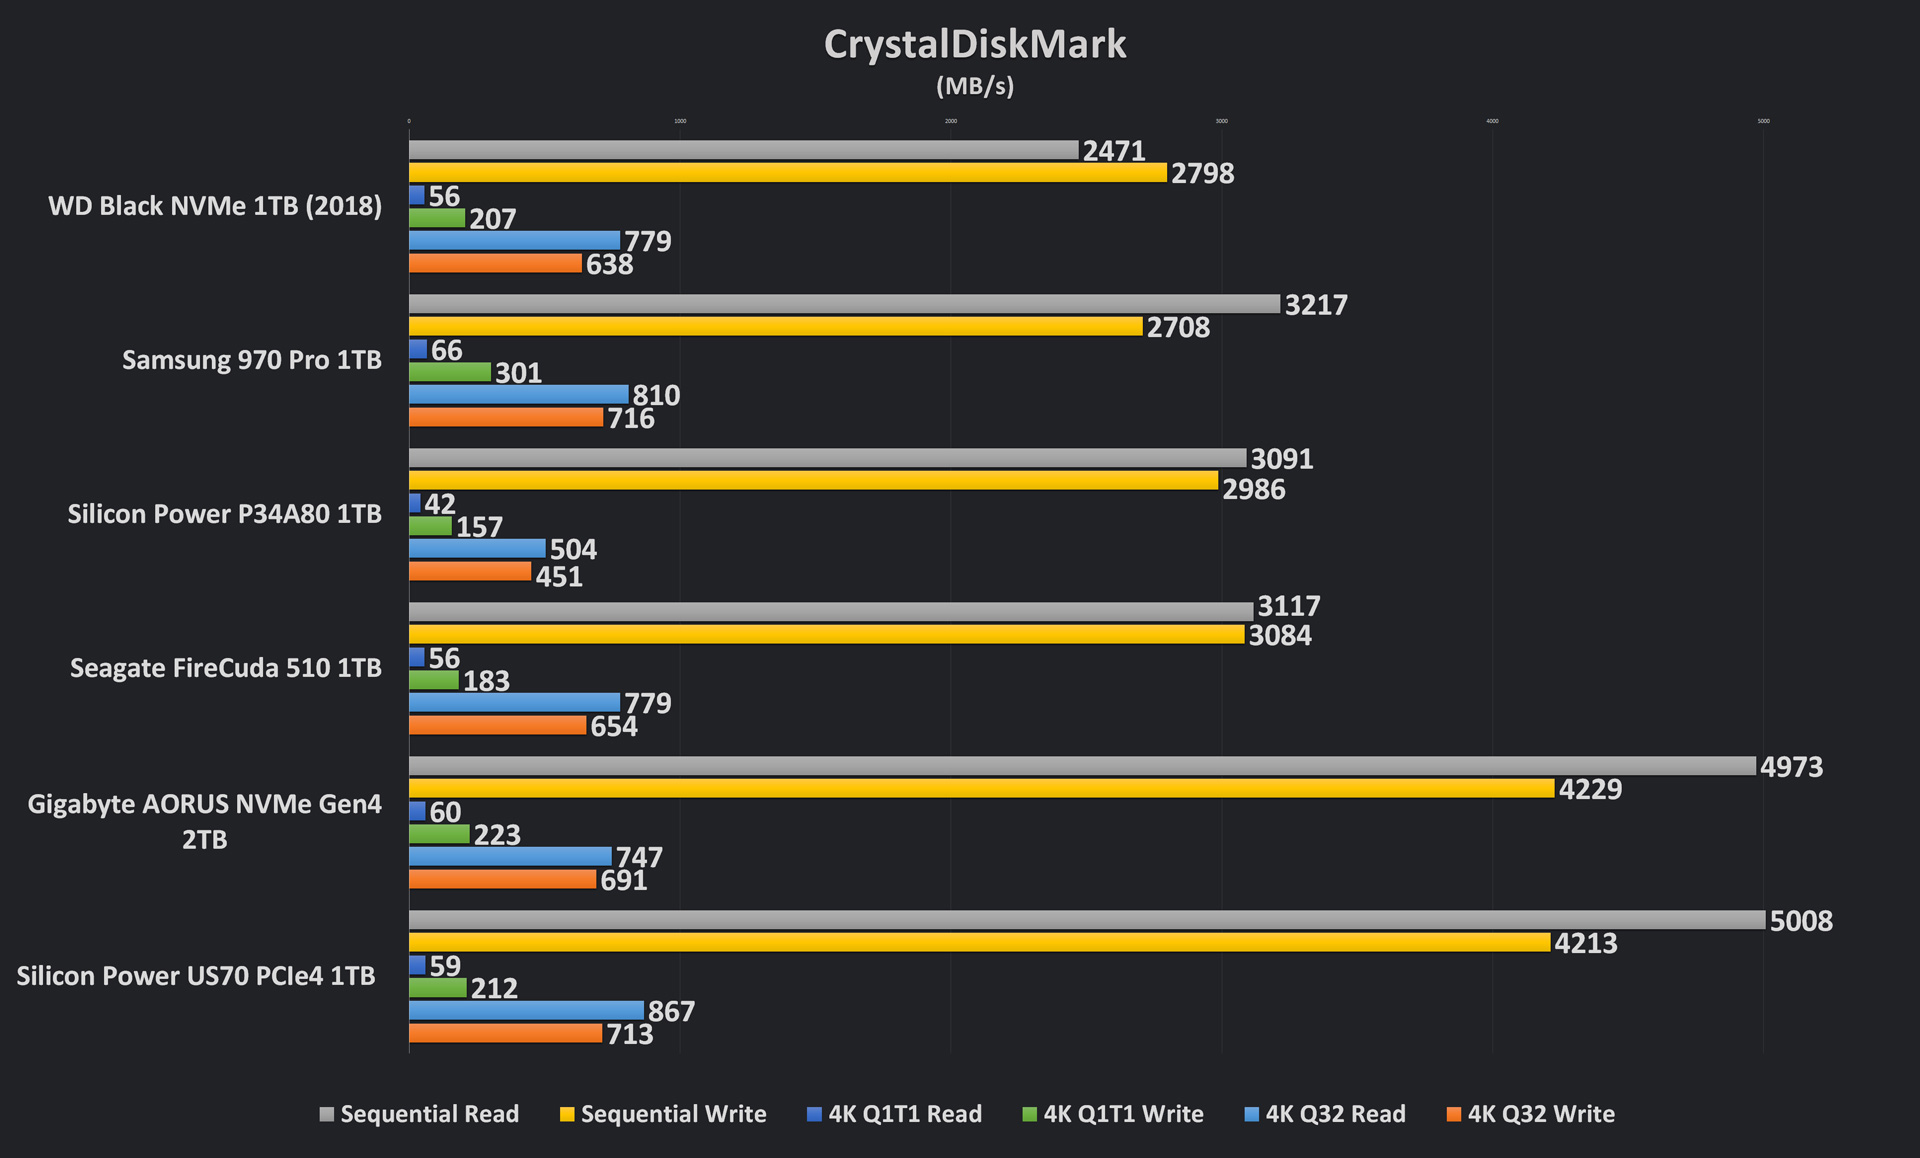 Silicon Power US70 CrystalDiskMark Results